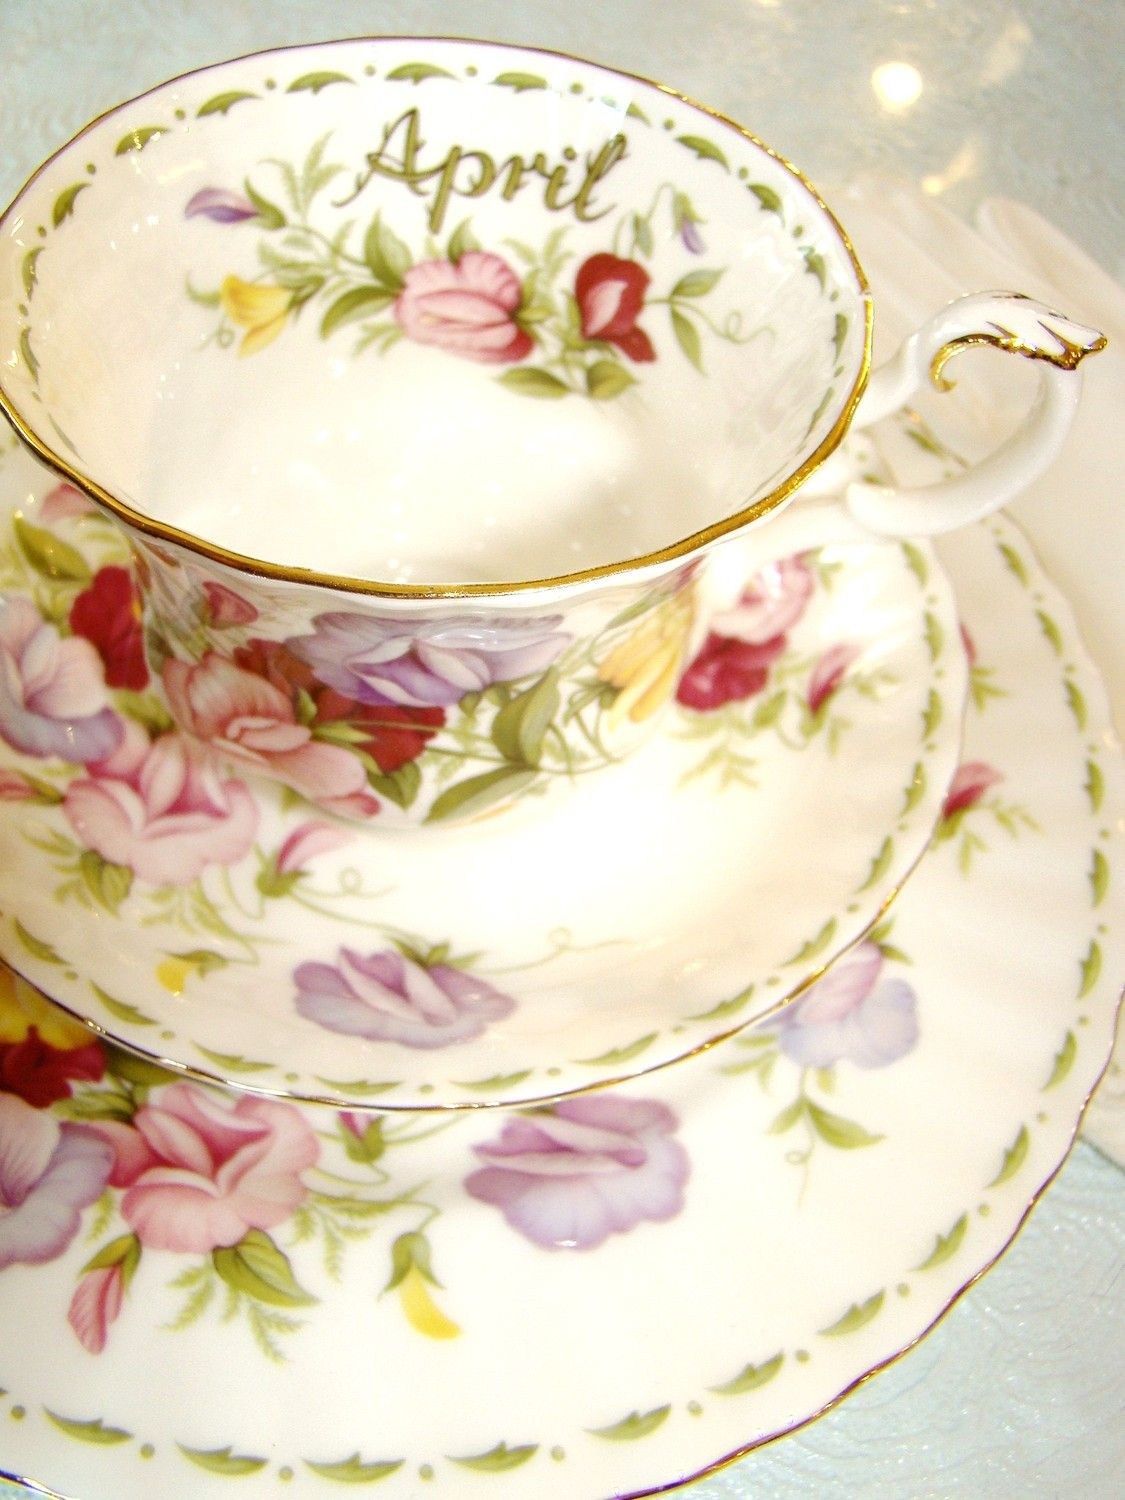 Kristallen Huisdecoratie Royal Albert England Bone China April Flower Of The Month